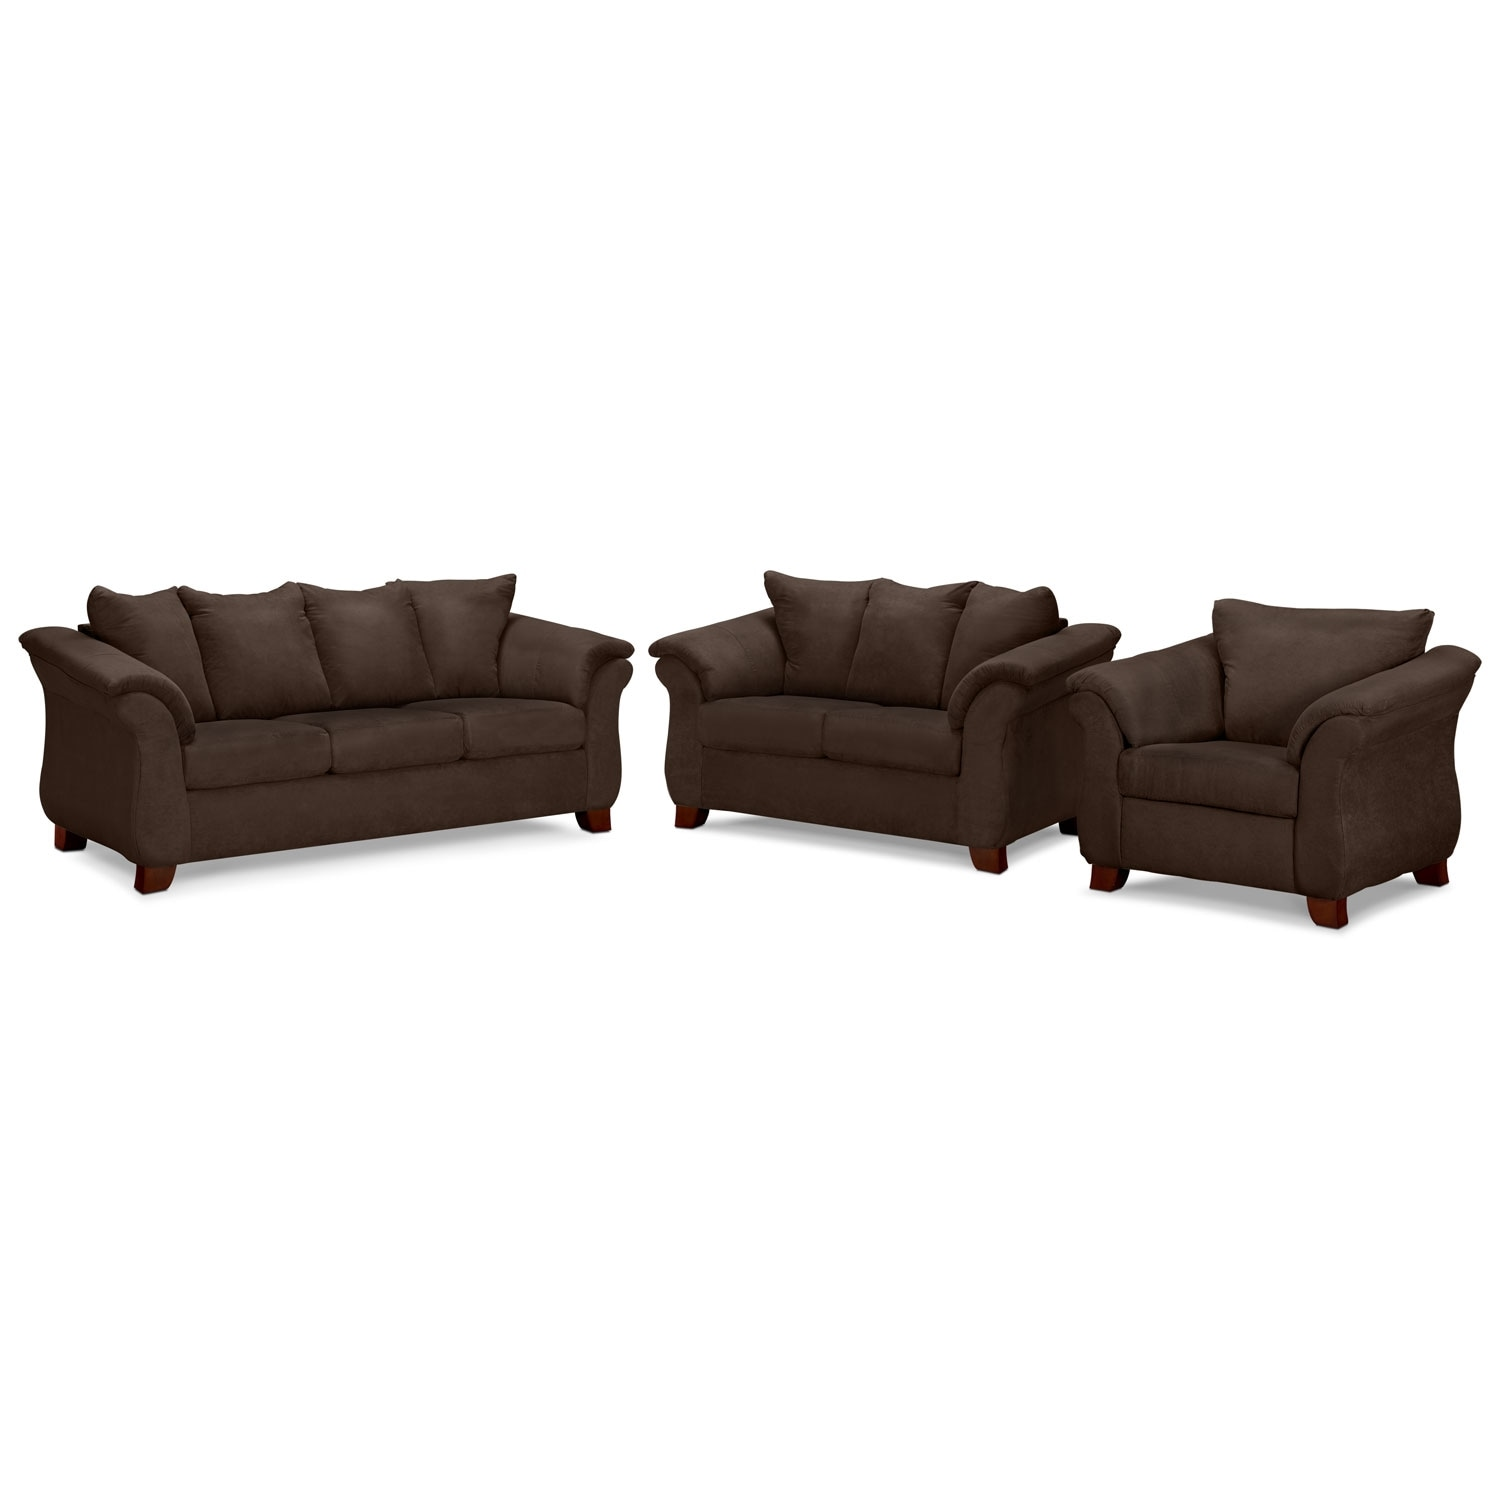 Captivating Adrian Sofa, Loveseat And Chair Set   Chocolate